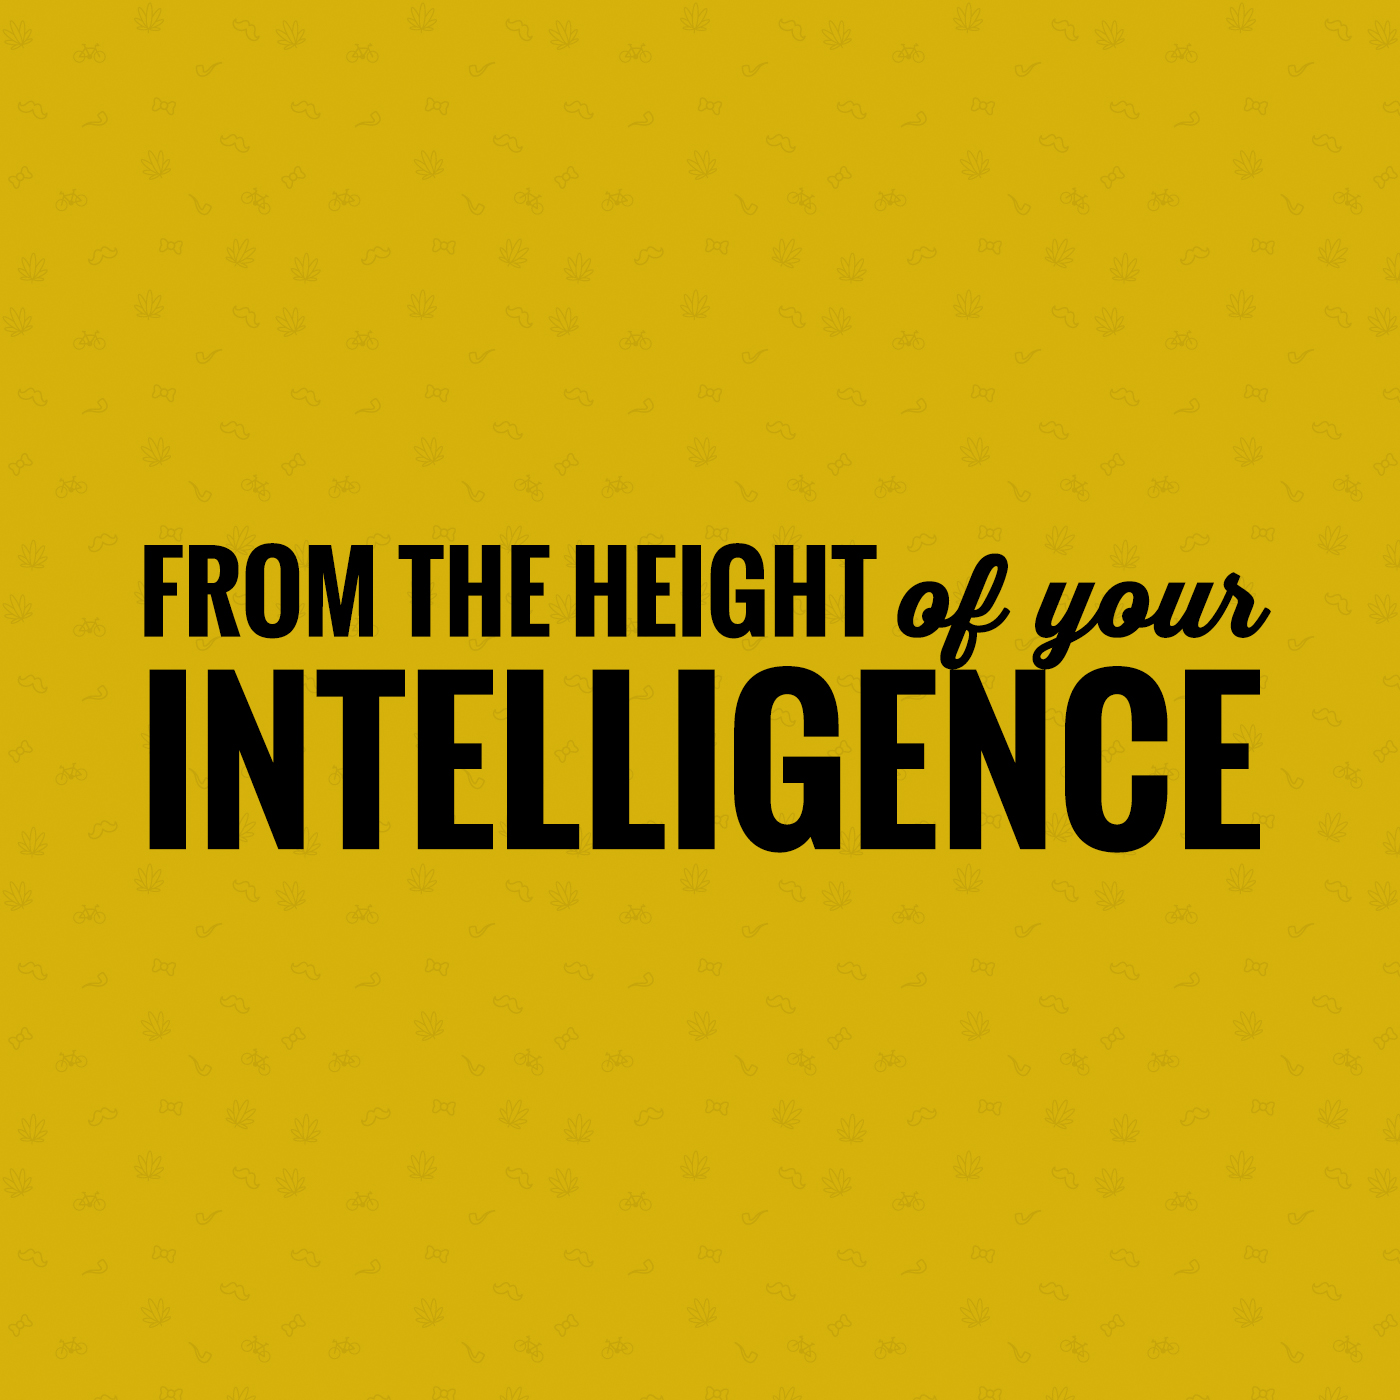 From The Height of Your Intelligence